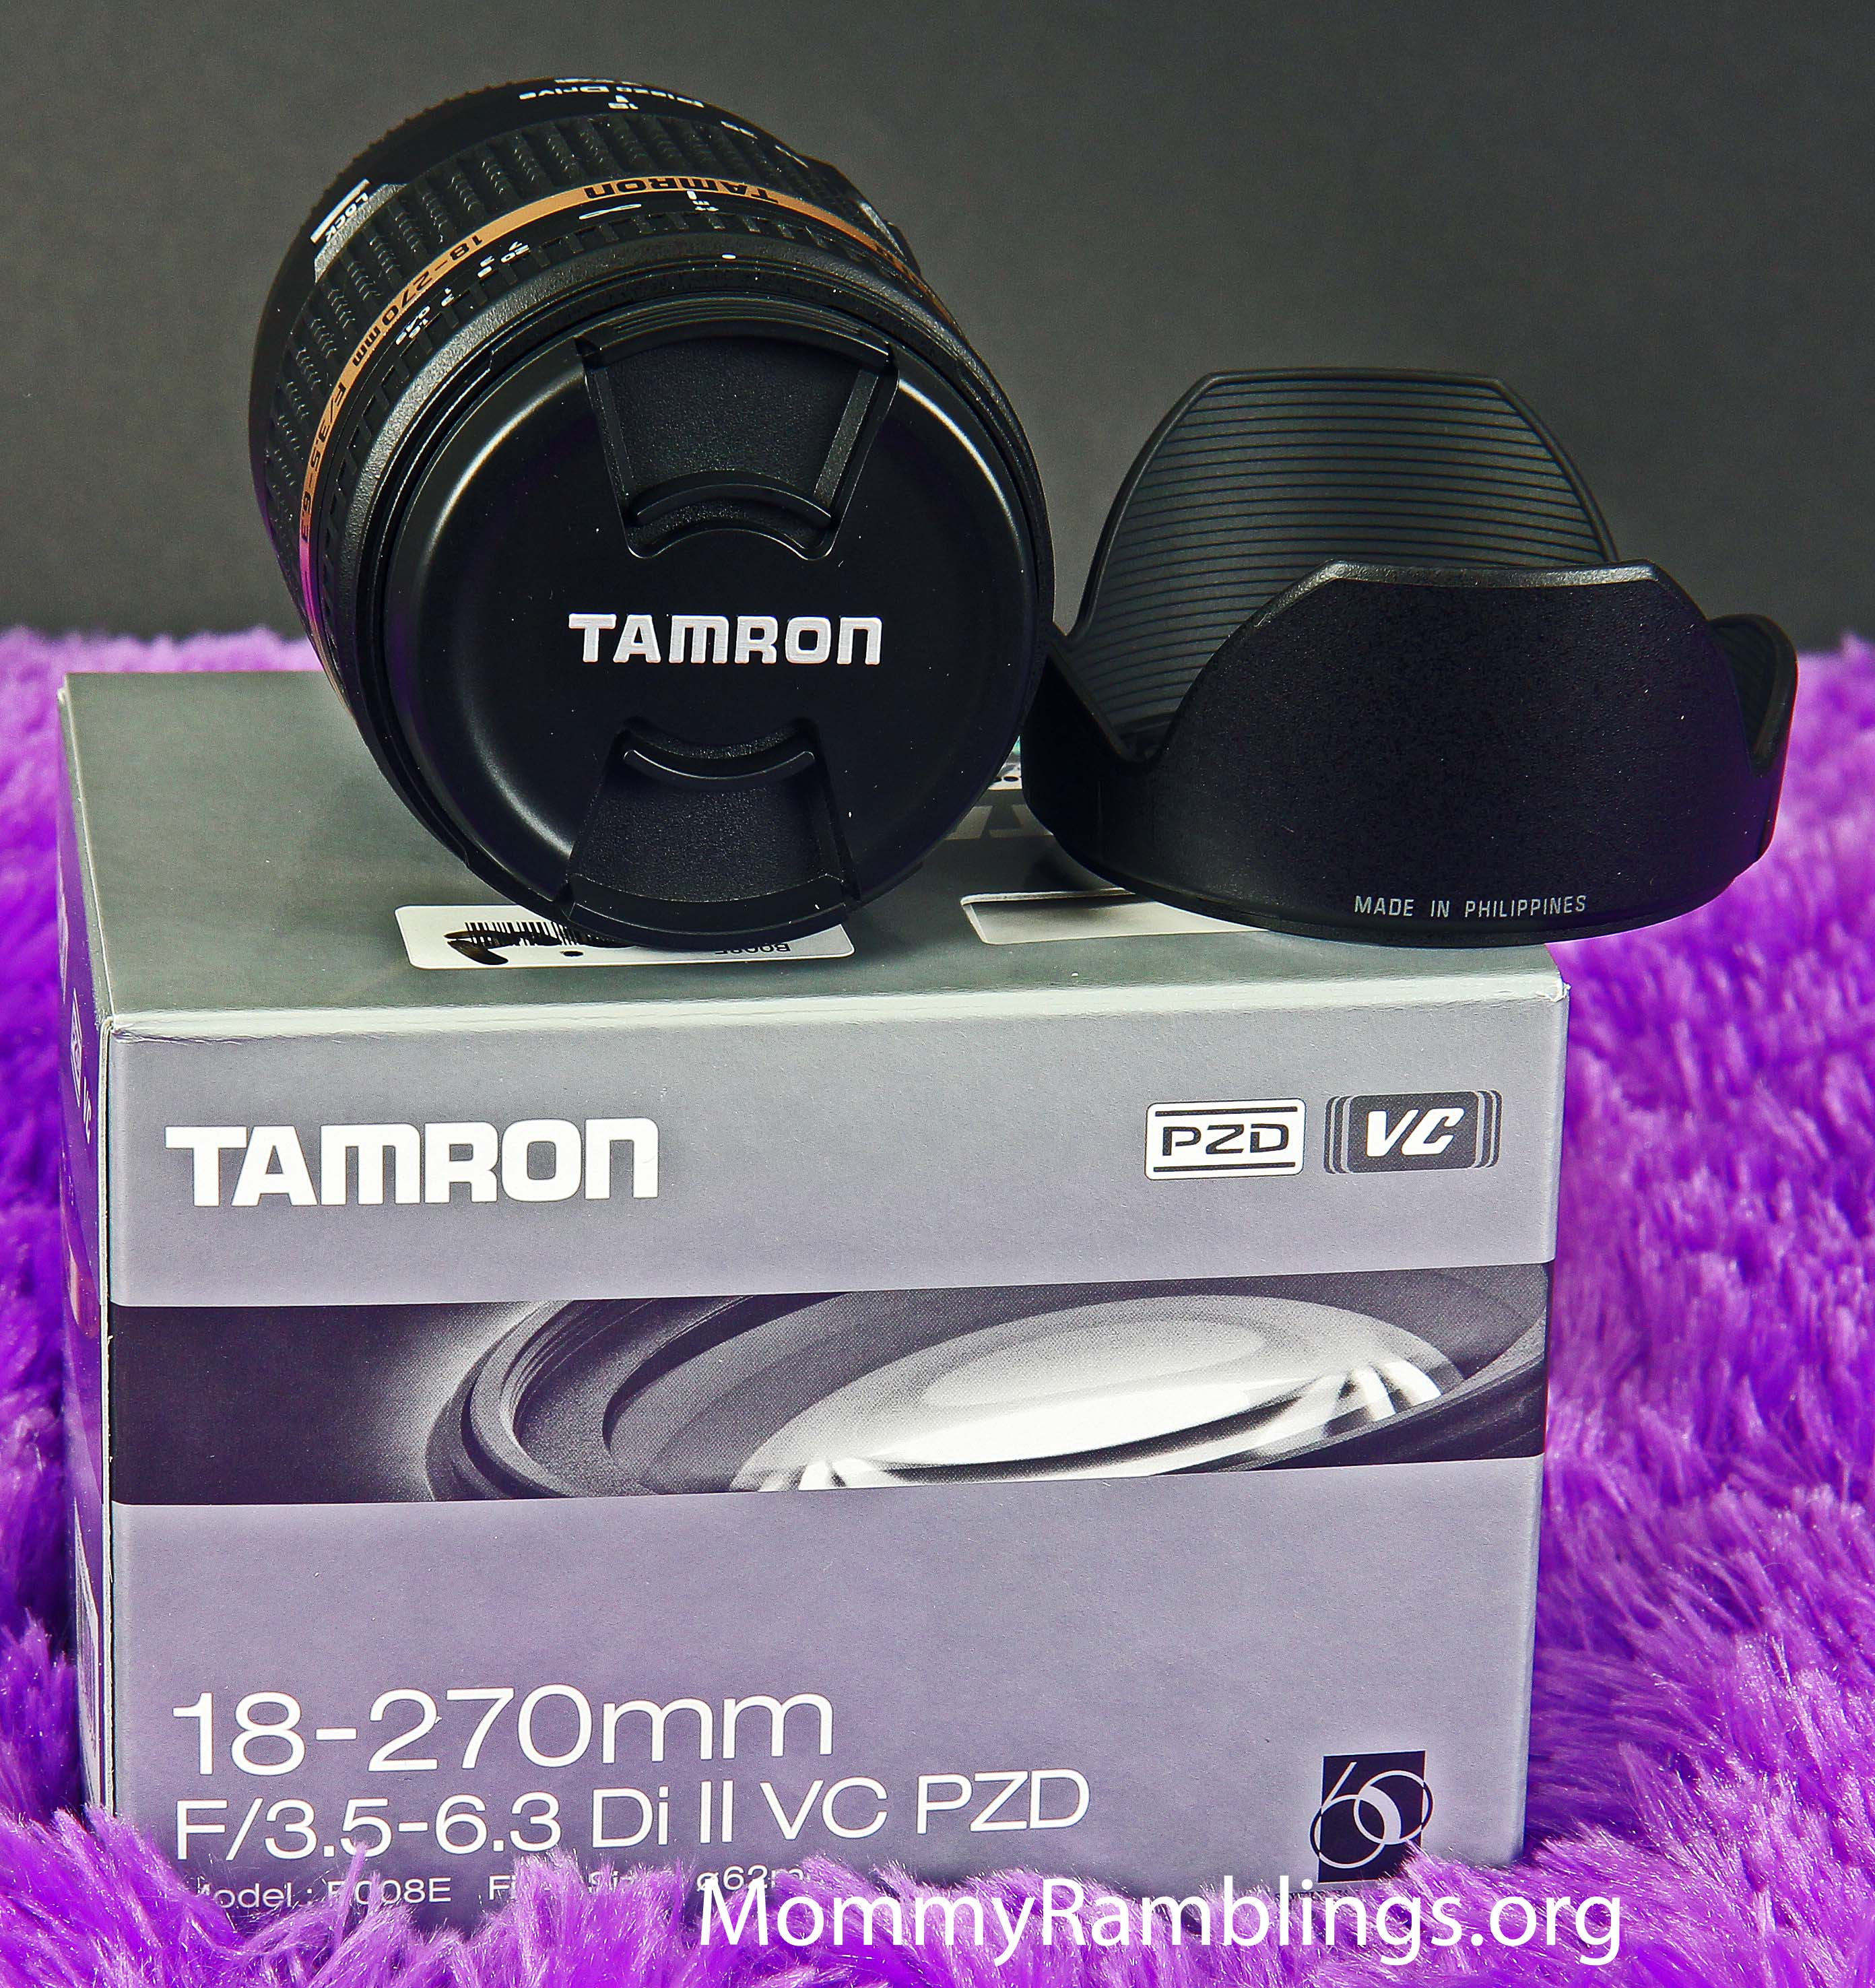 Tamron Af18 270mm F 35 63 Di Ii Vc Pzd Af Lens Mommy Ramblings 18 For Canon Should Try The Auto Focus Works Great And Vibration Compensation Mechanism Is Flawless